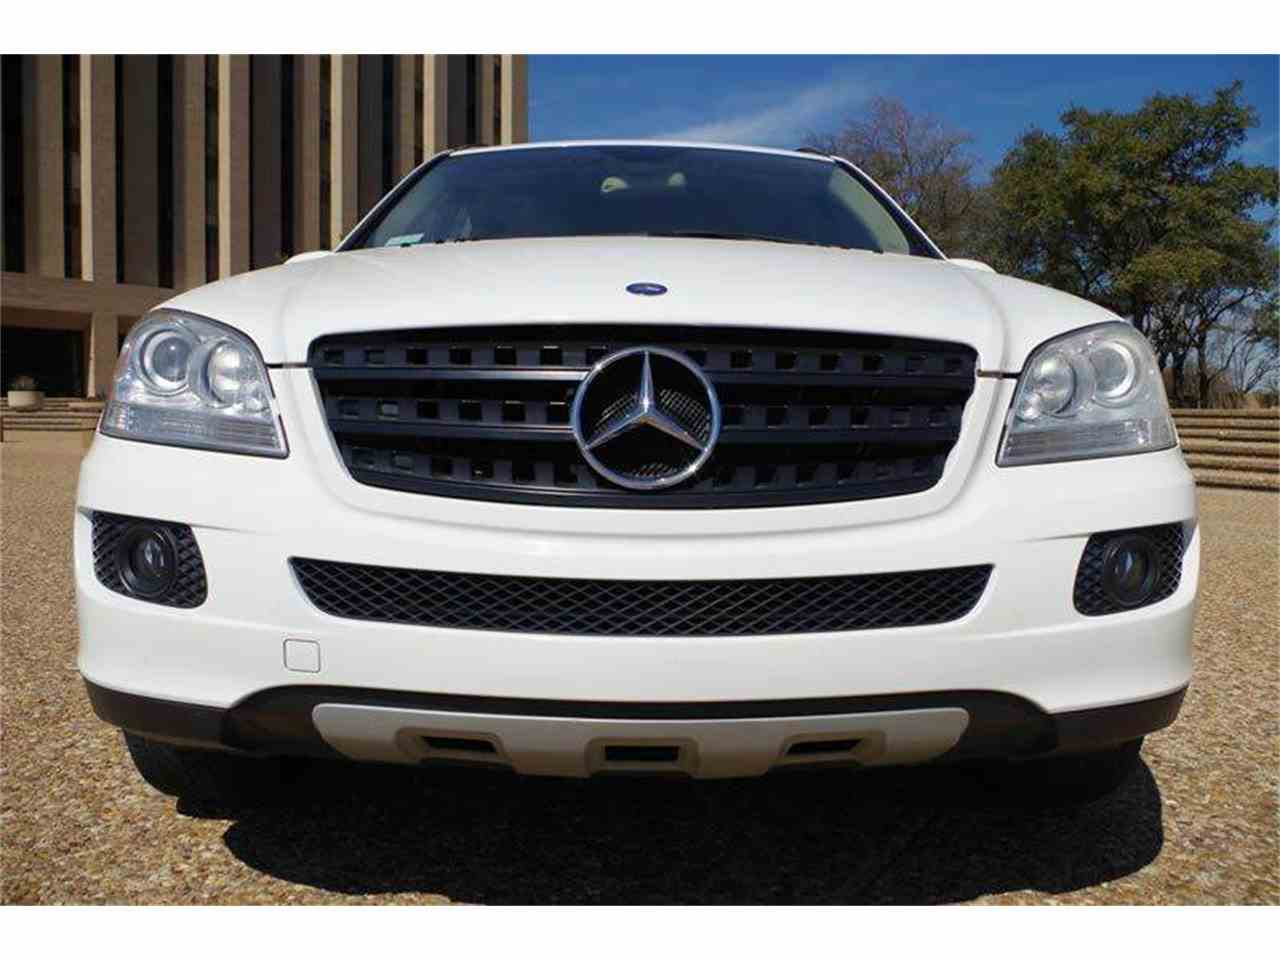 2006 mercedes benz m class for sale cc for 2006 mercedes benz ml350 for sale